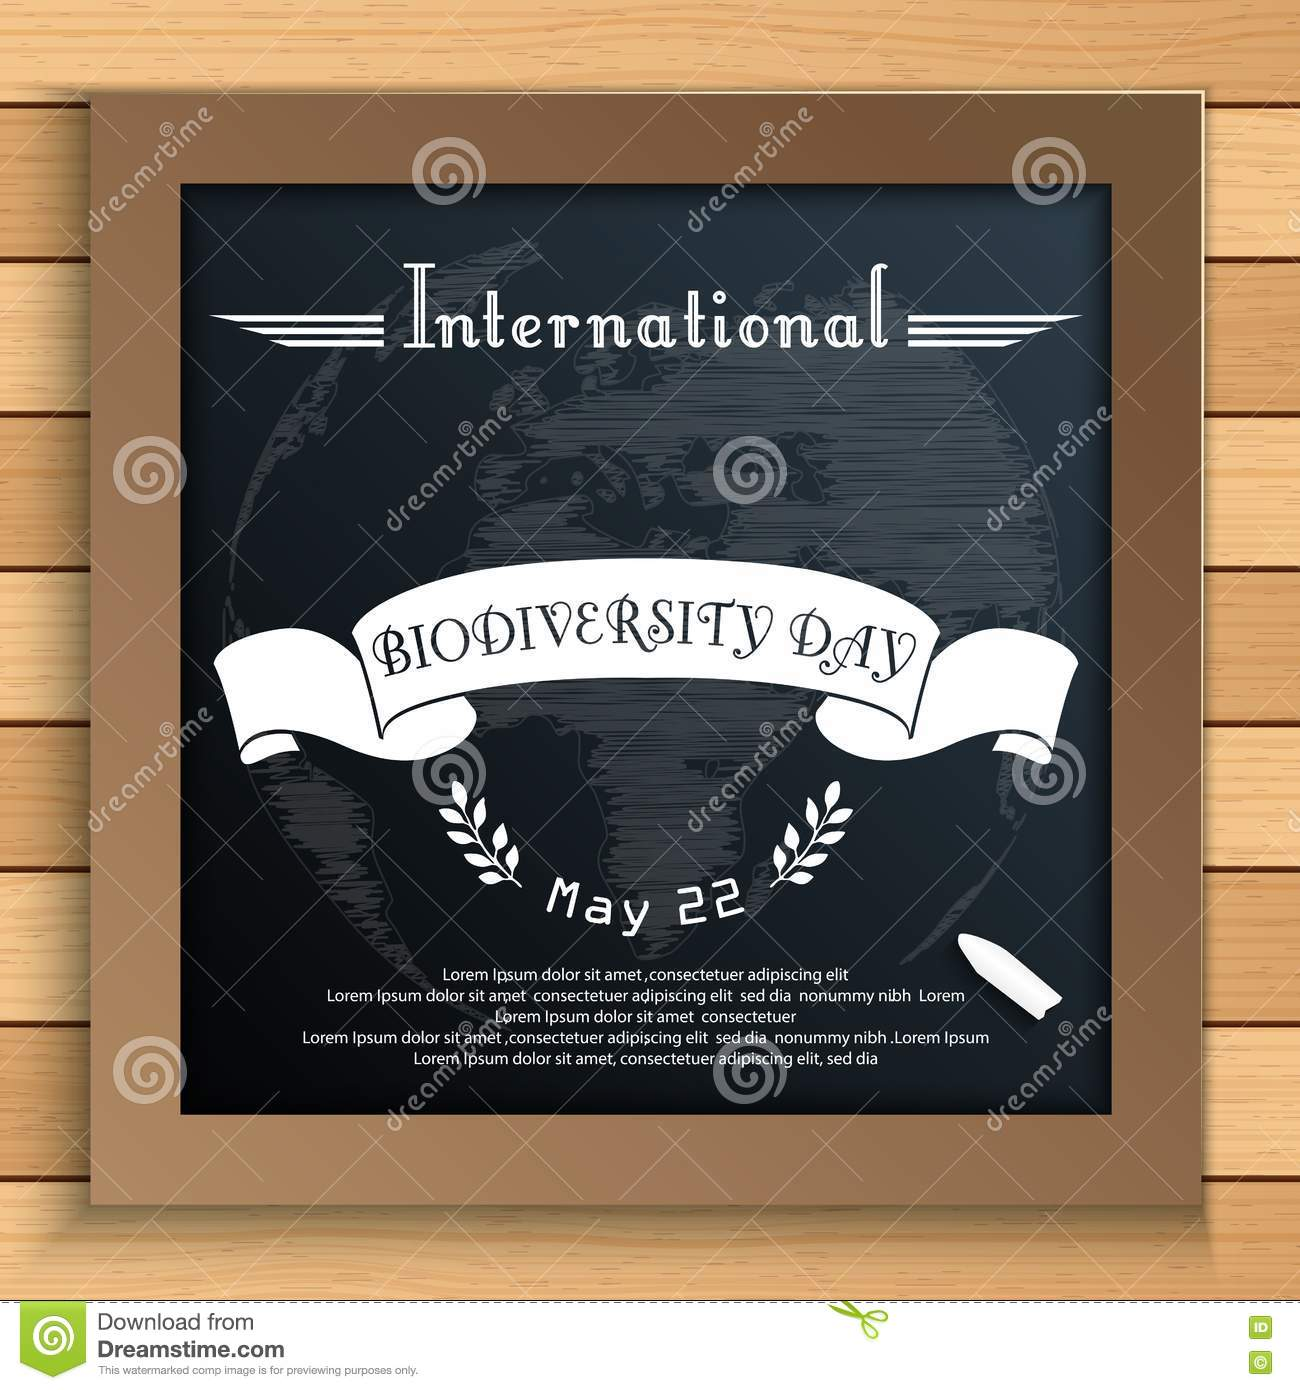 Biodiversity international day with Earth and white ribbon on blackboard